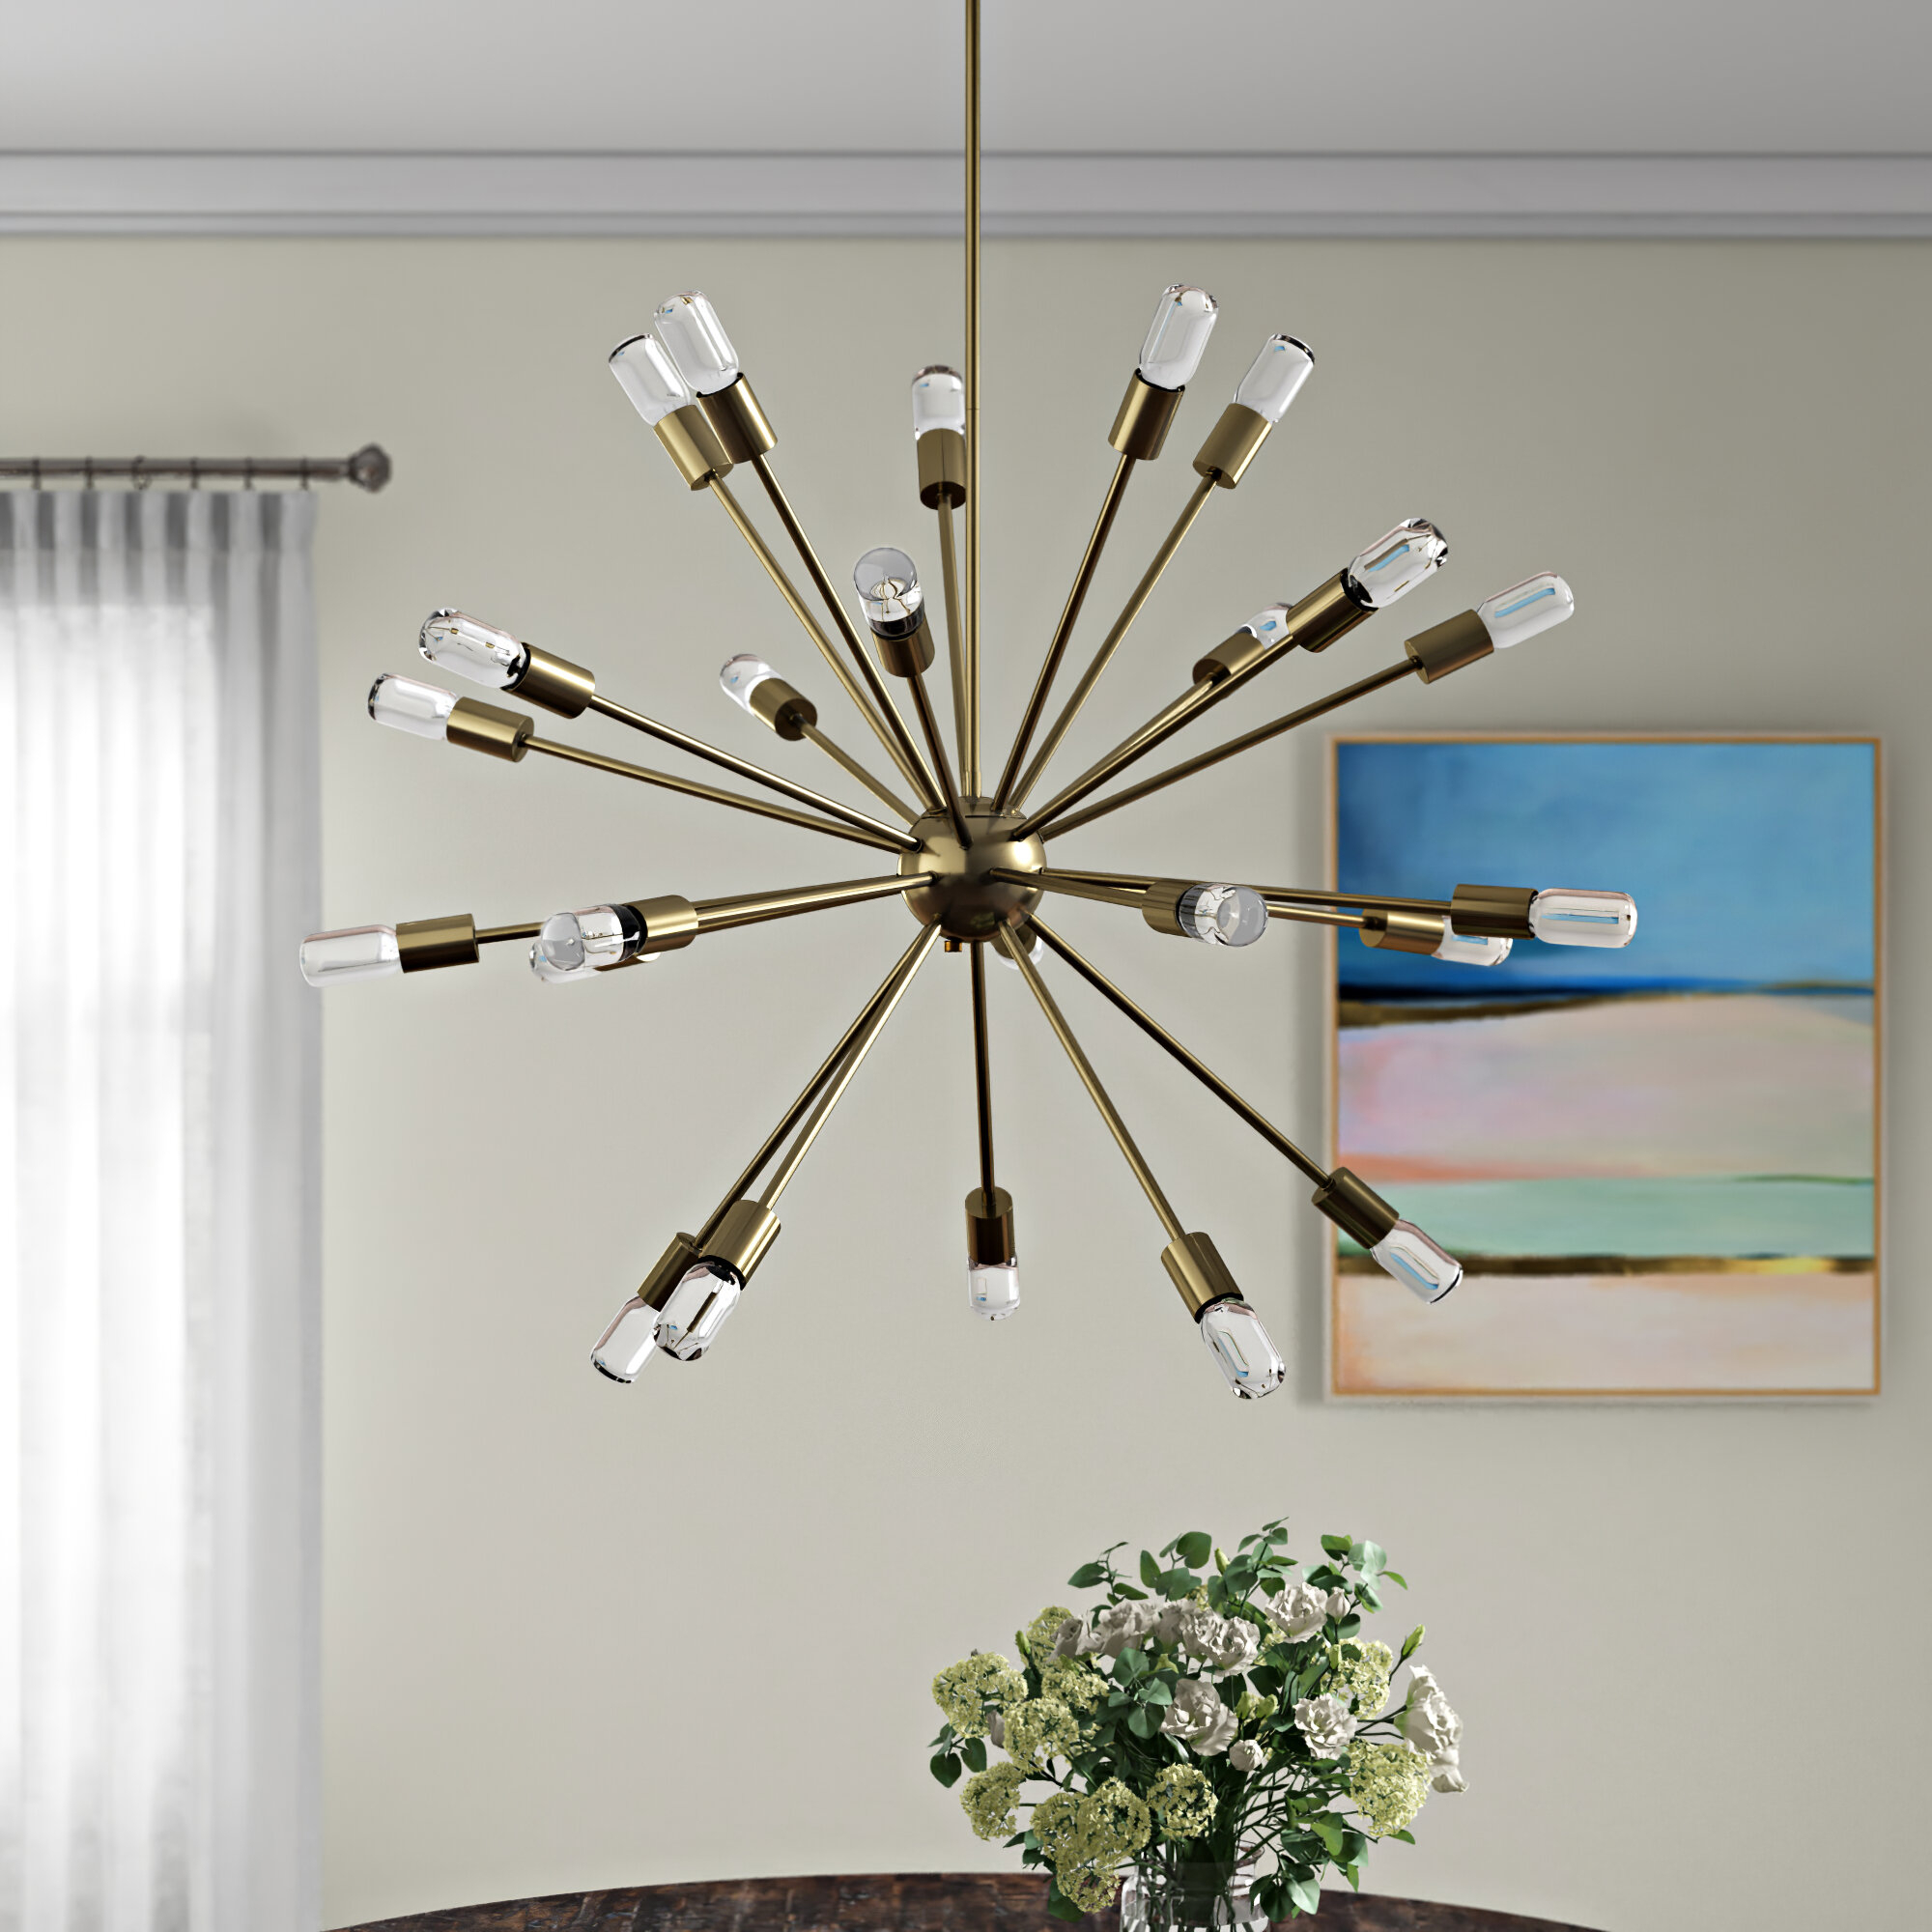 Kendall 24-Light Chandelier within Asher 12-Light Sputnik Chandeliers (Image 17 of 30)